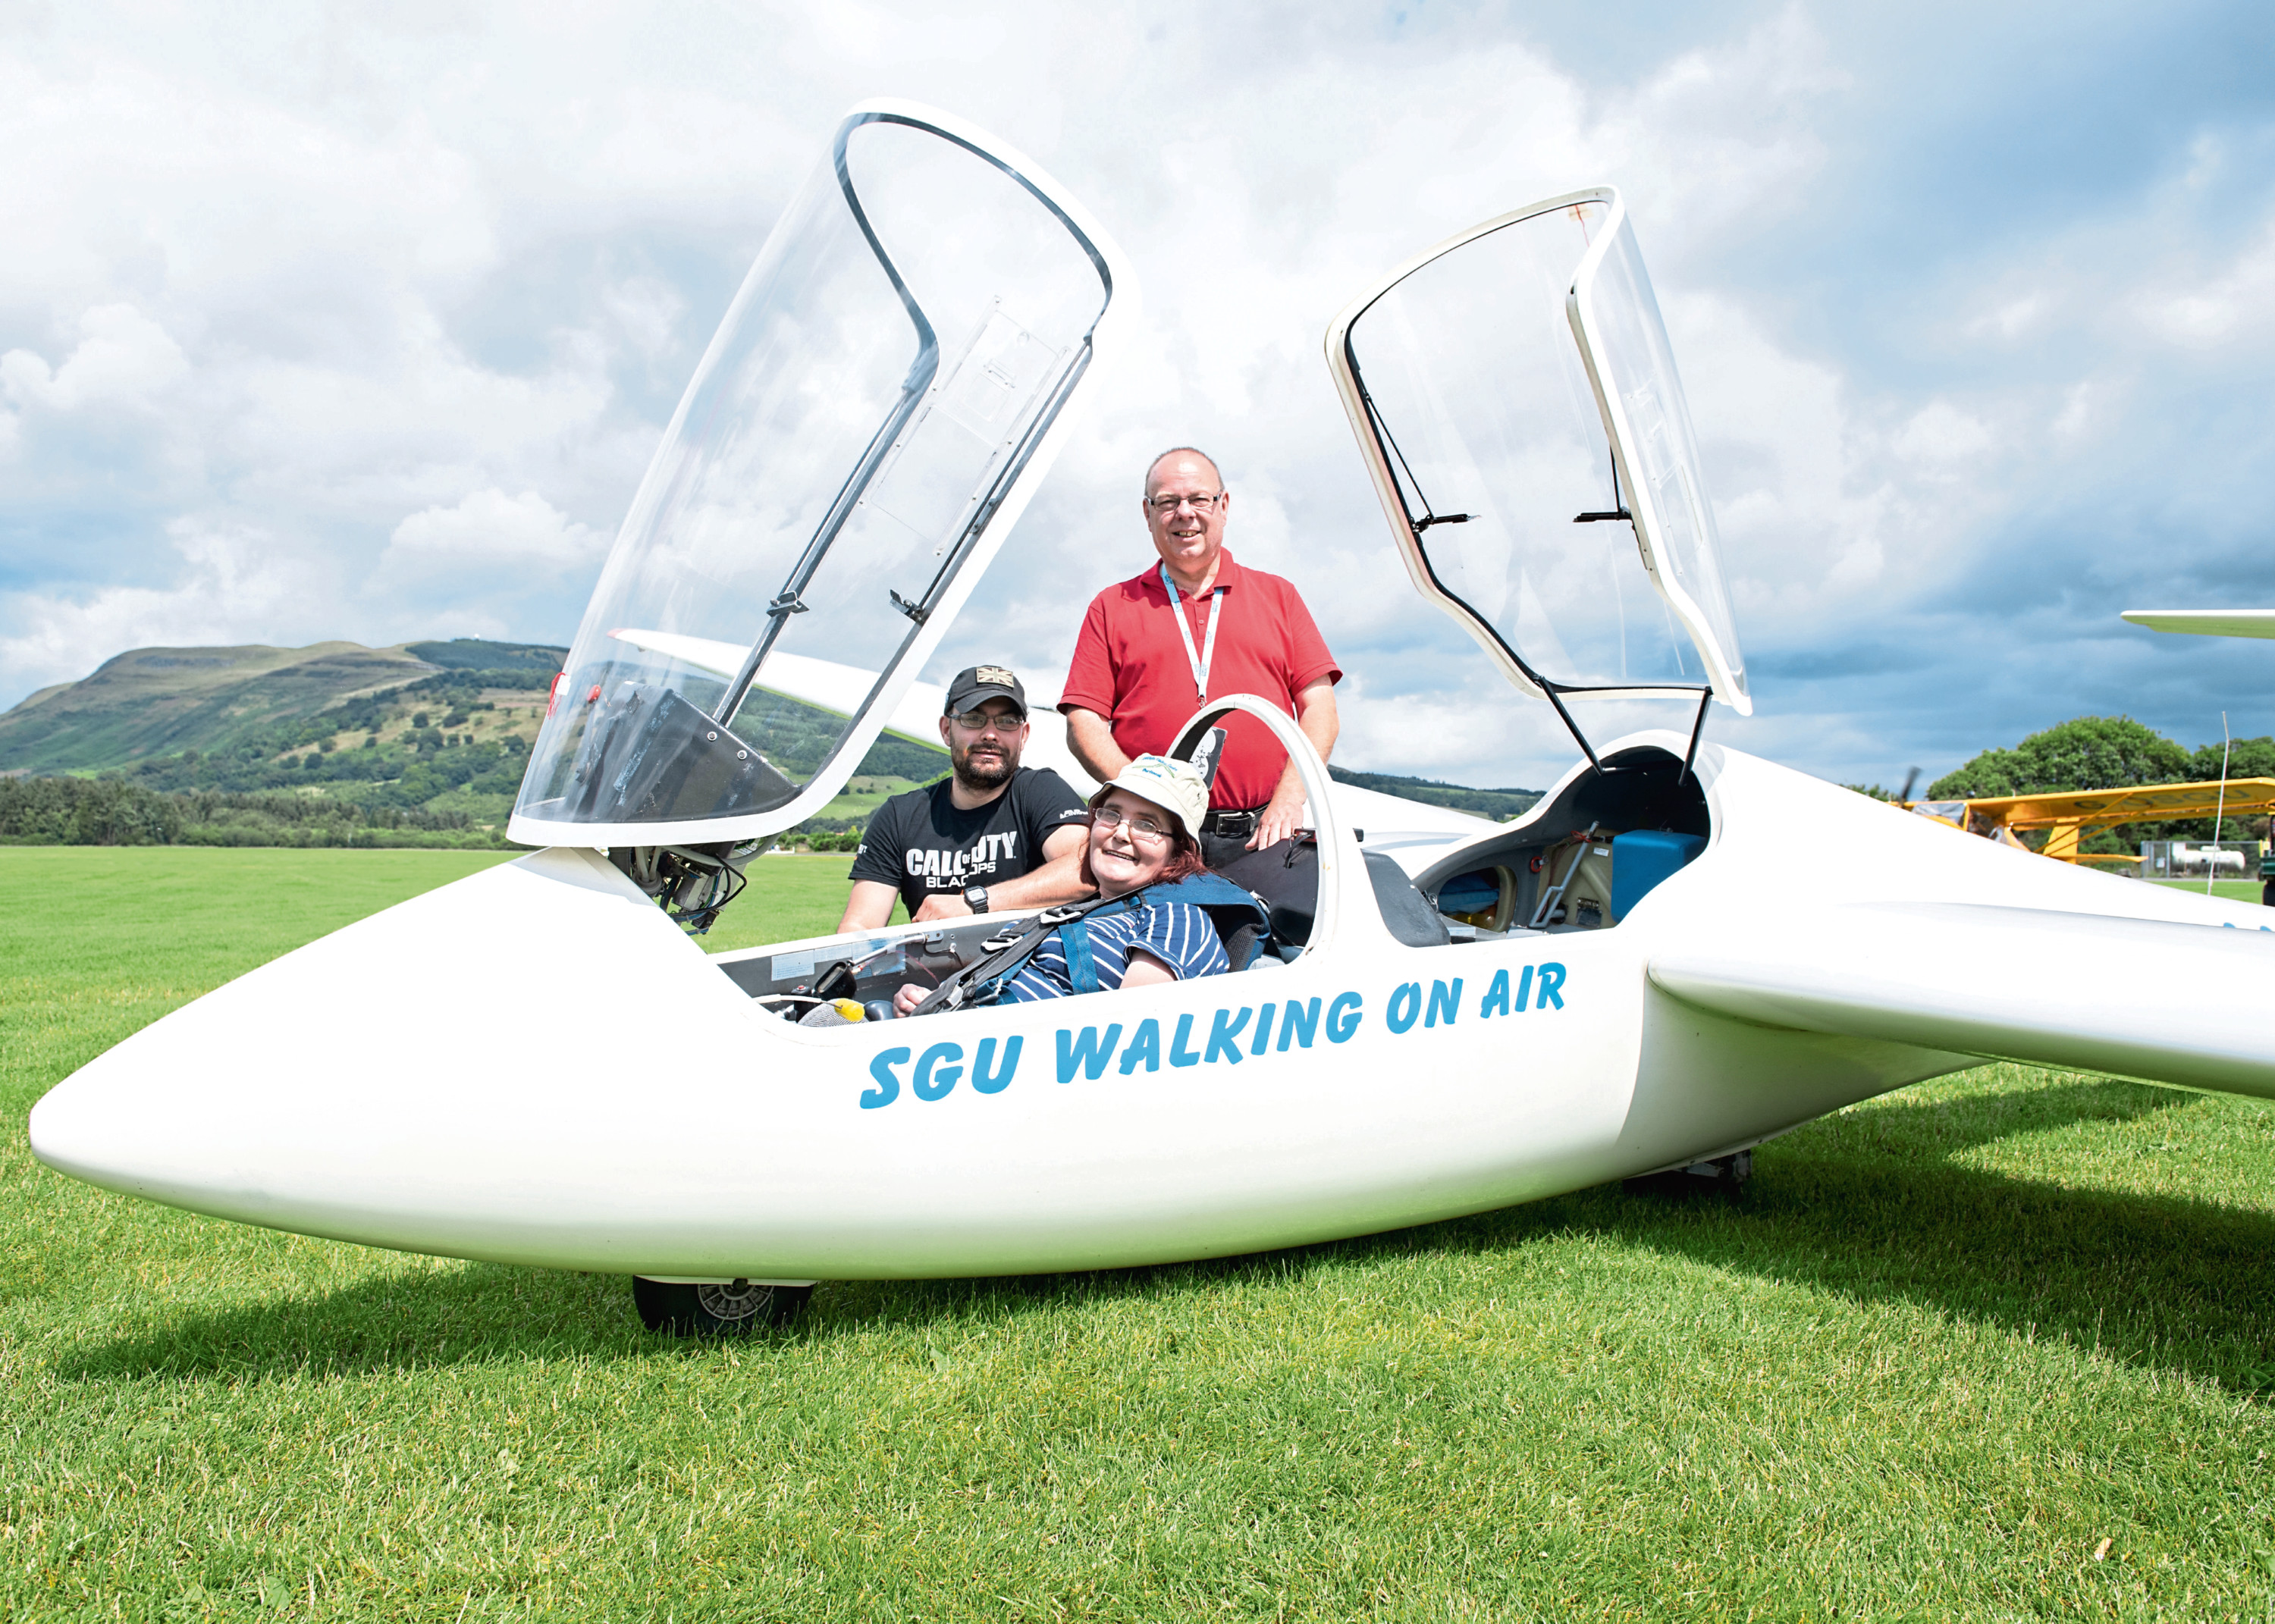 Angie Wilkinson, 56, took to the skies in a glider on Friday.